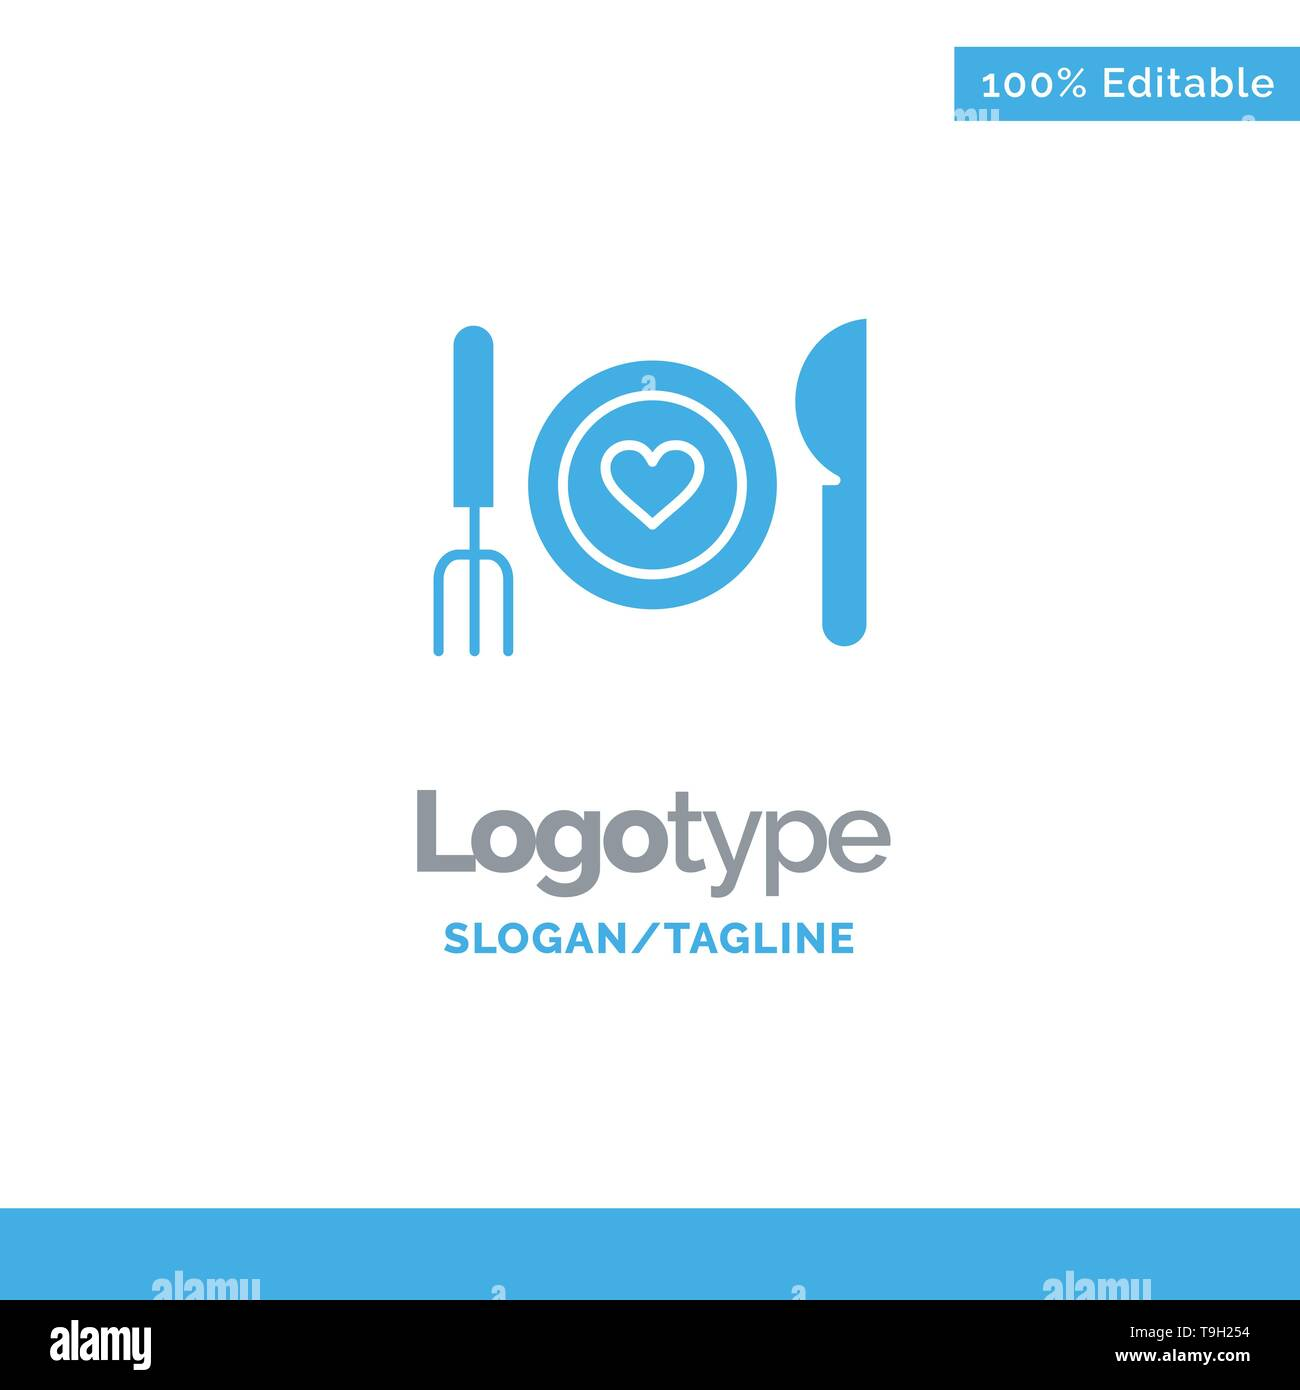 Dinner, Romantic, Food, Date, Couple Blue Solid Logo Template. Place for Tagline - Stock Image